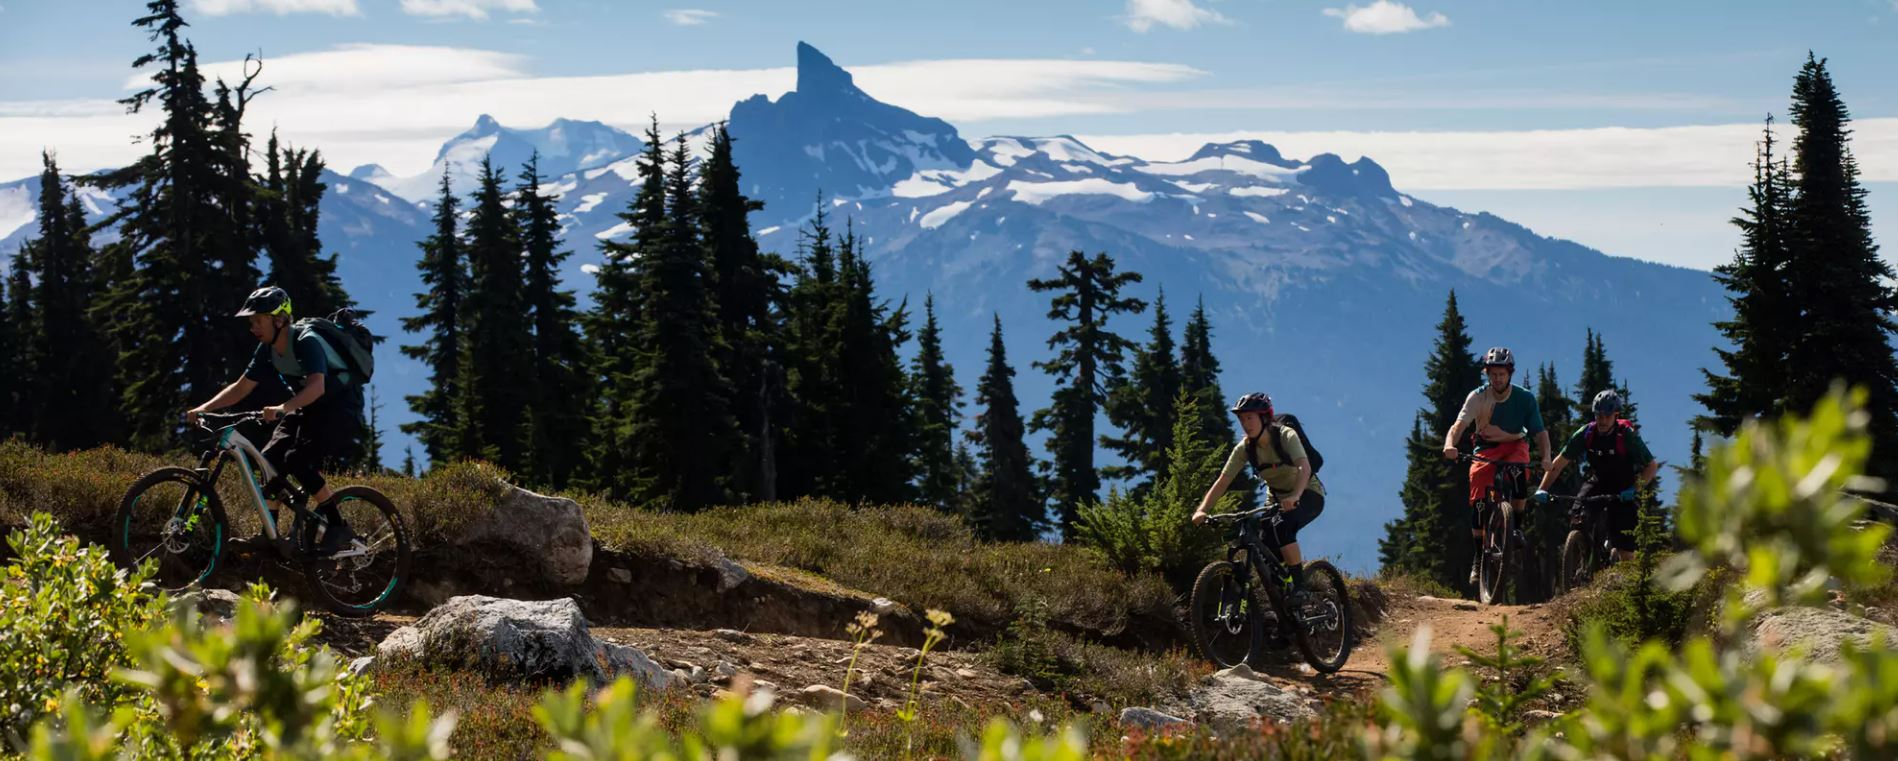 research into motivations for mountain biking tourism Mountain bike tourism helps to bring in revenue for the host community and region people travel various destinations around the world for experiencing mountain biking according to the report, one driver in the market is increase in accidents and crashes, and related injuries.